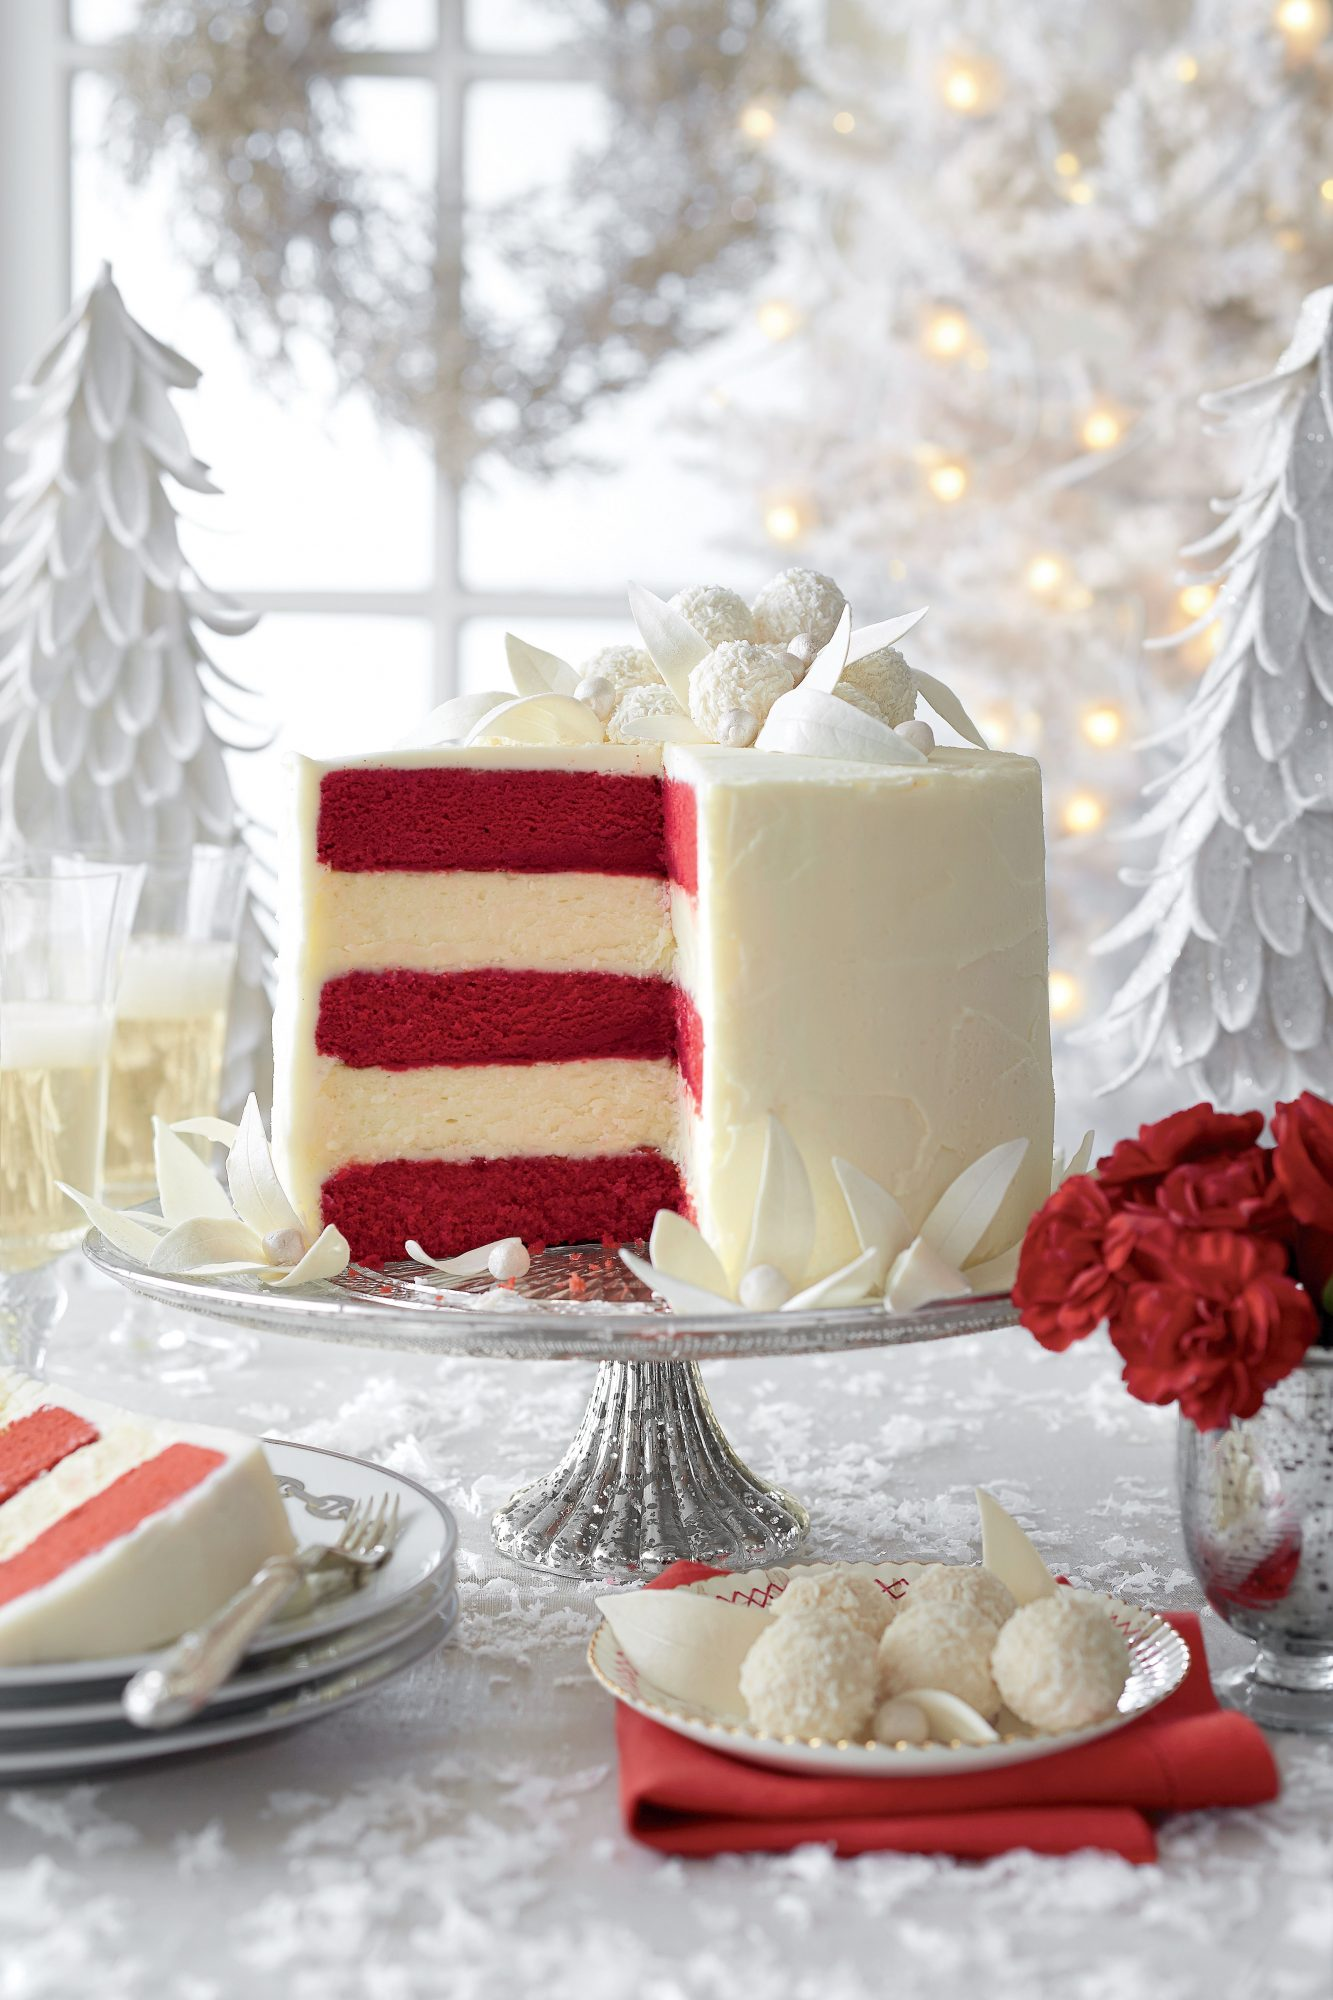 This Is Our Most Popular Christmas Cake Ever - Southern Living